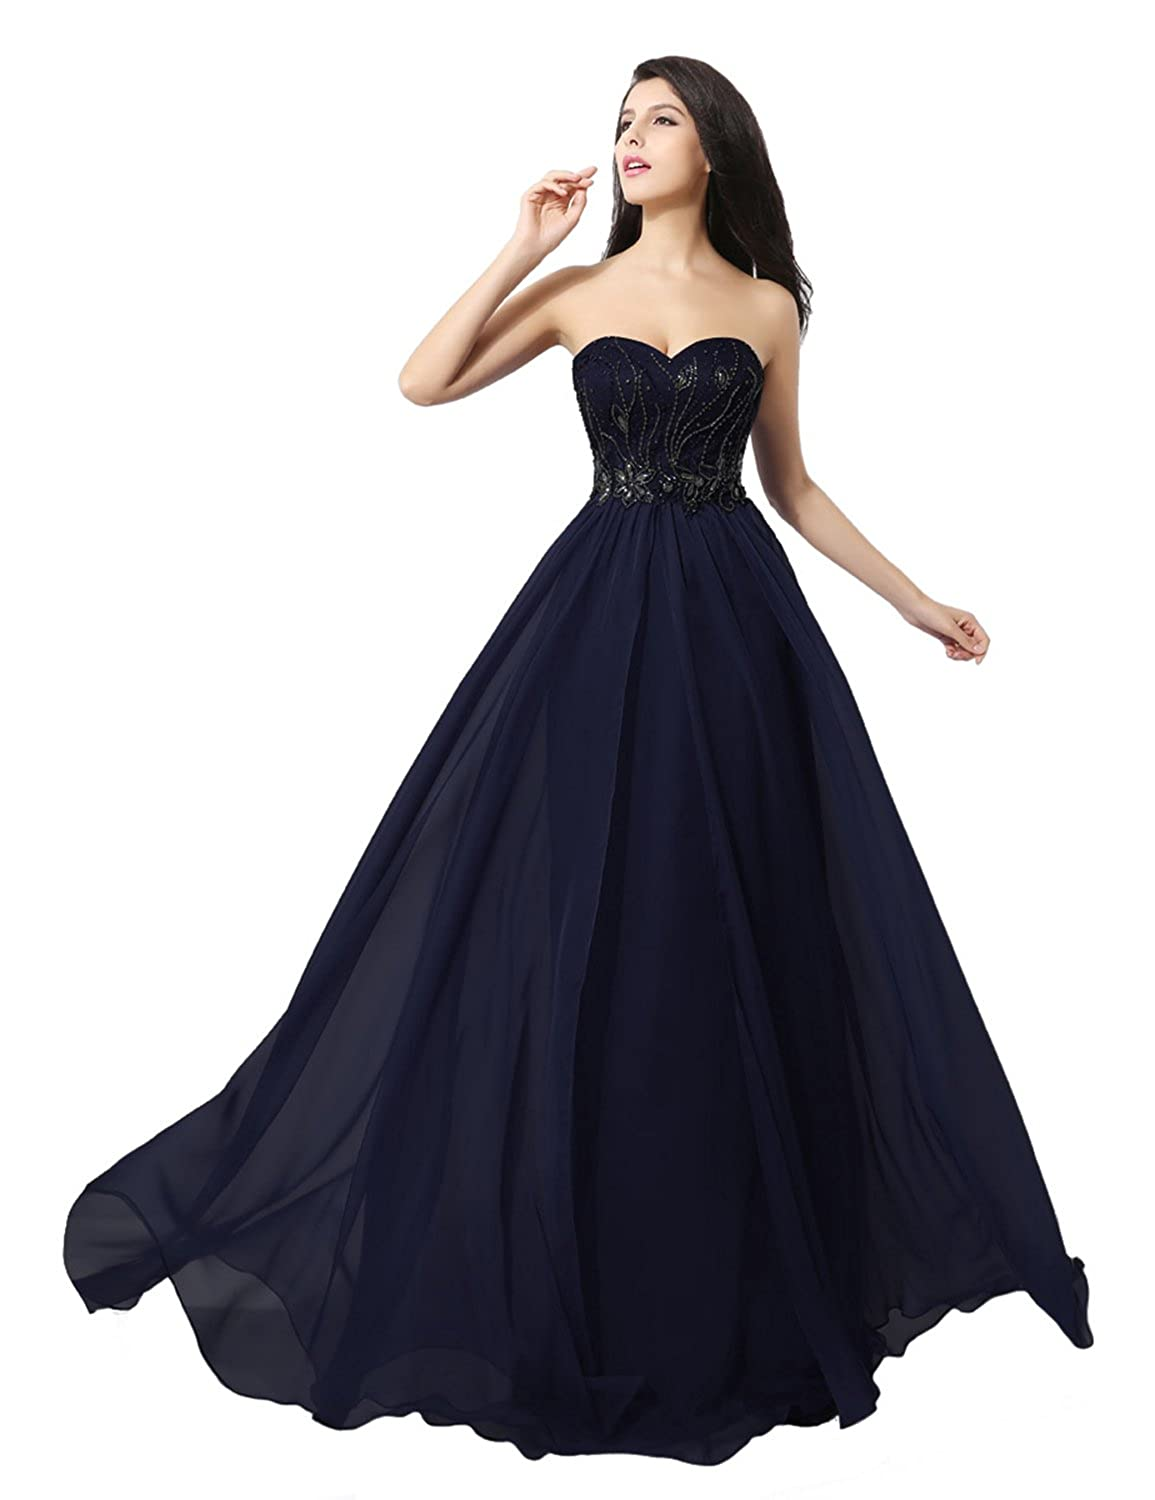 Sarahbridal Women's Long Sweetheart Chiffon Bridesmaid Dresses Beaded Evening Prom Dress Party Gowns SAJ009